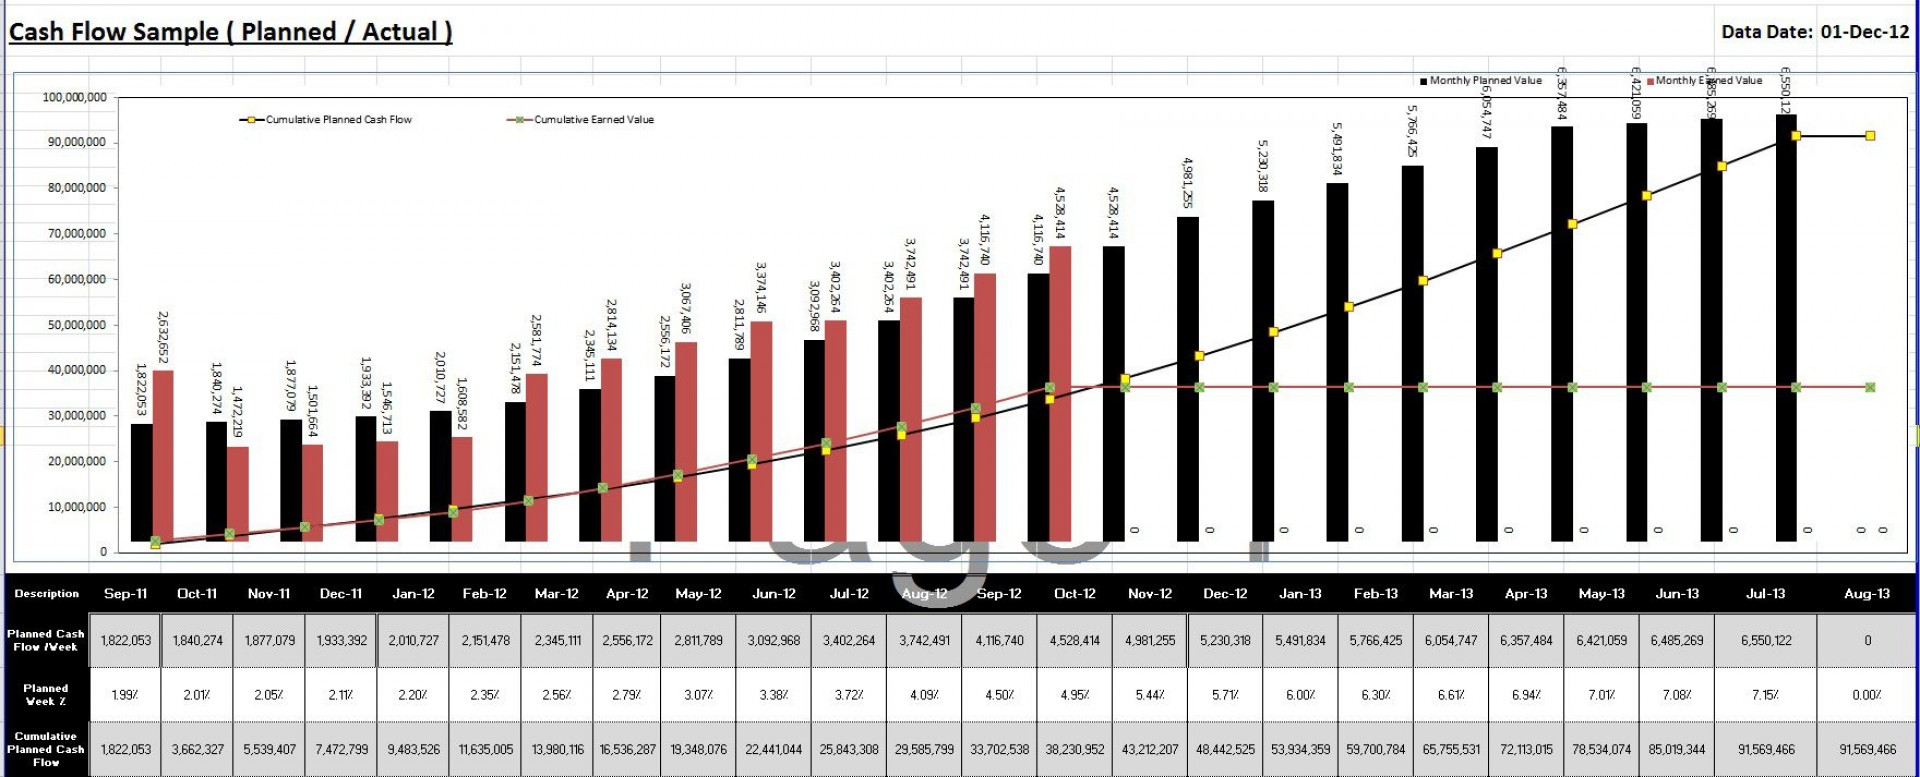 003 Imposing Cash Flow Format Excel Download High Resolution  Forecast Template Indirect Statement In Free1920